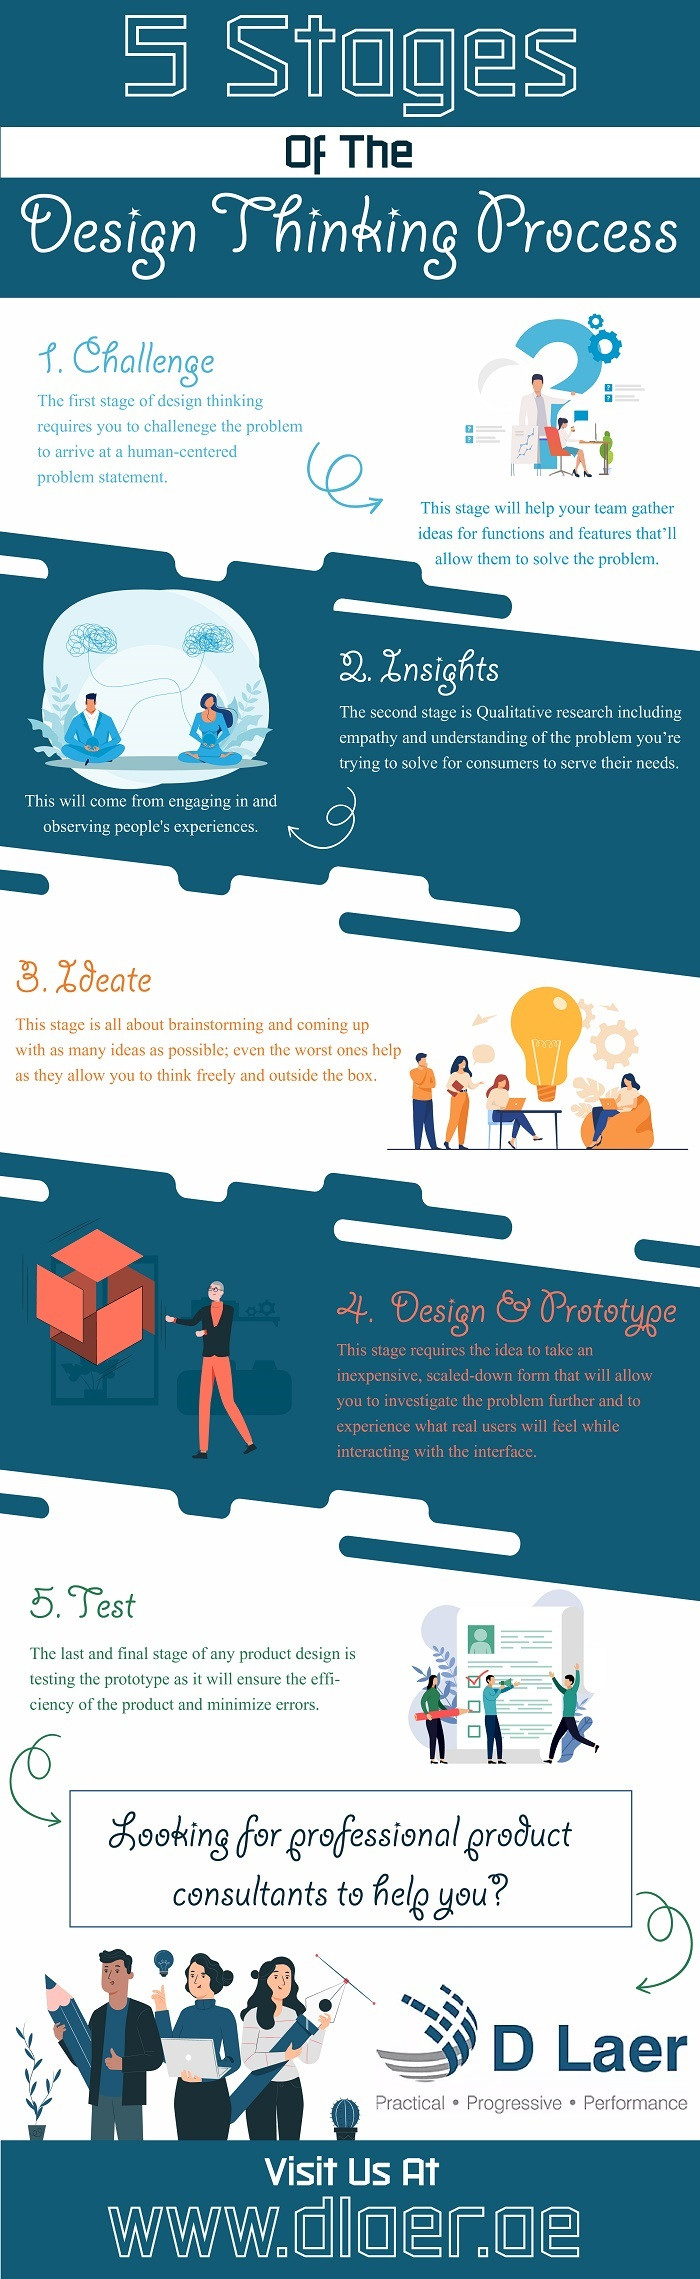 5 Stages of the Design Thinking Process